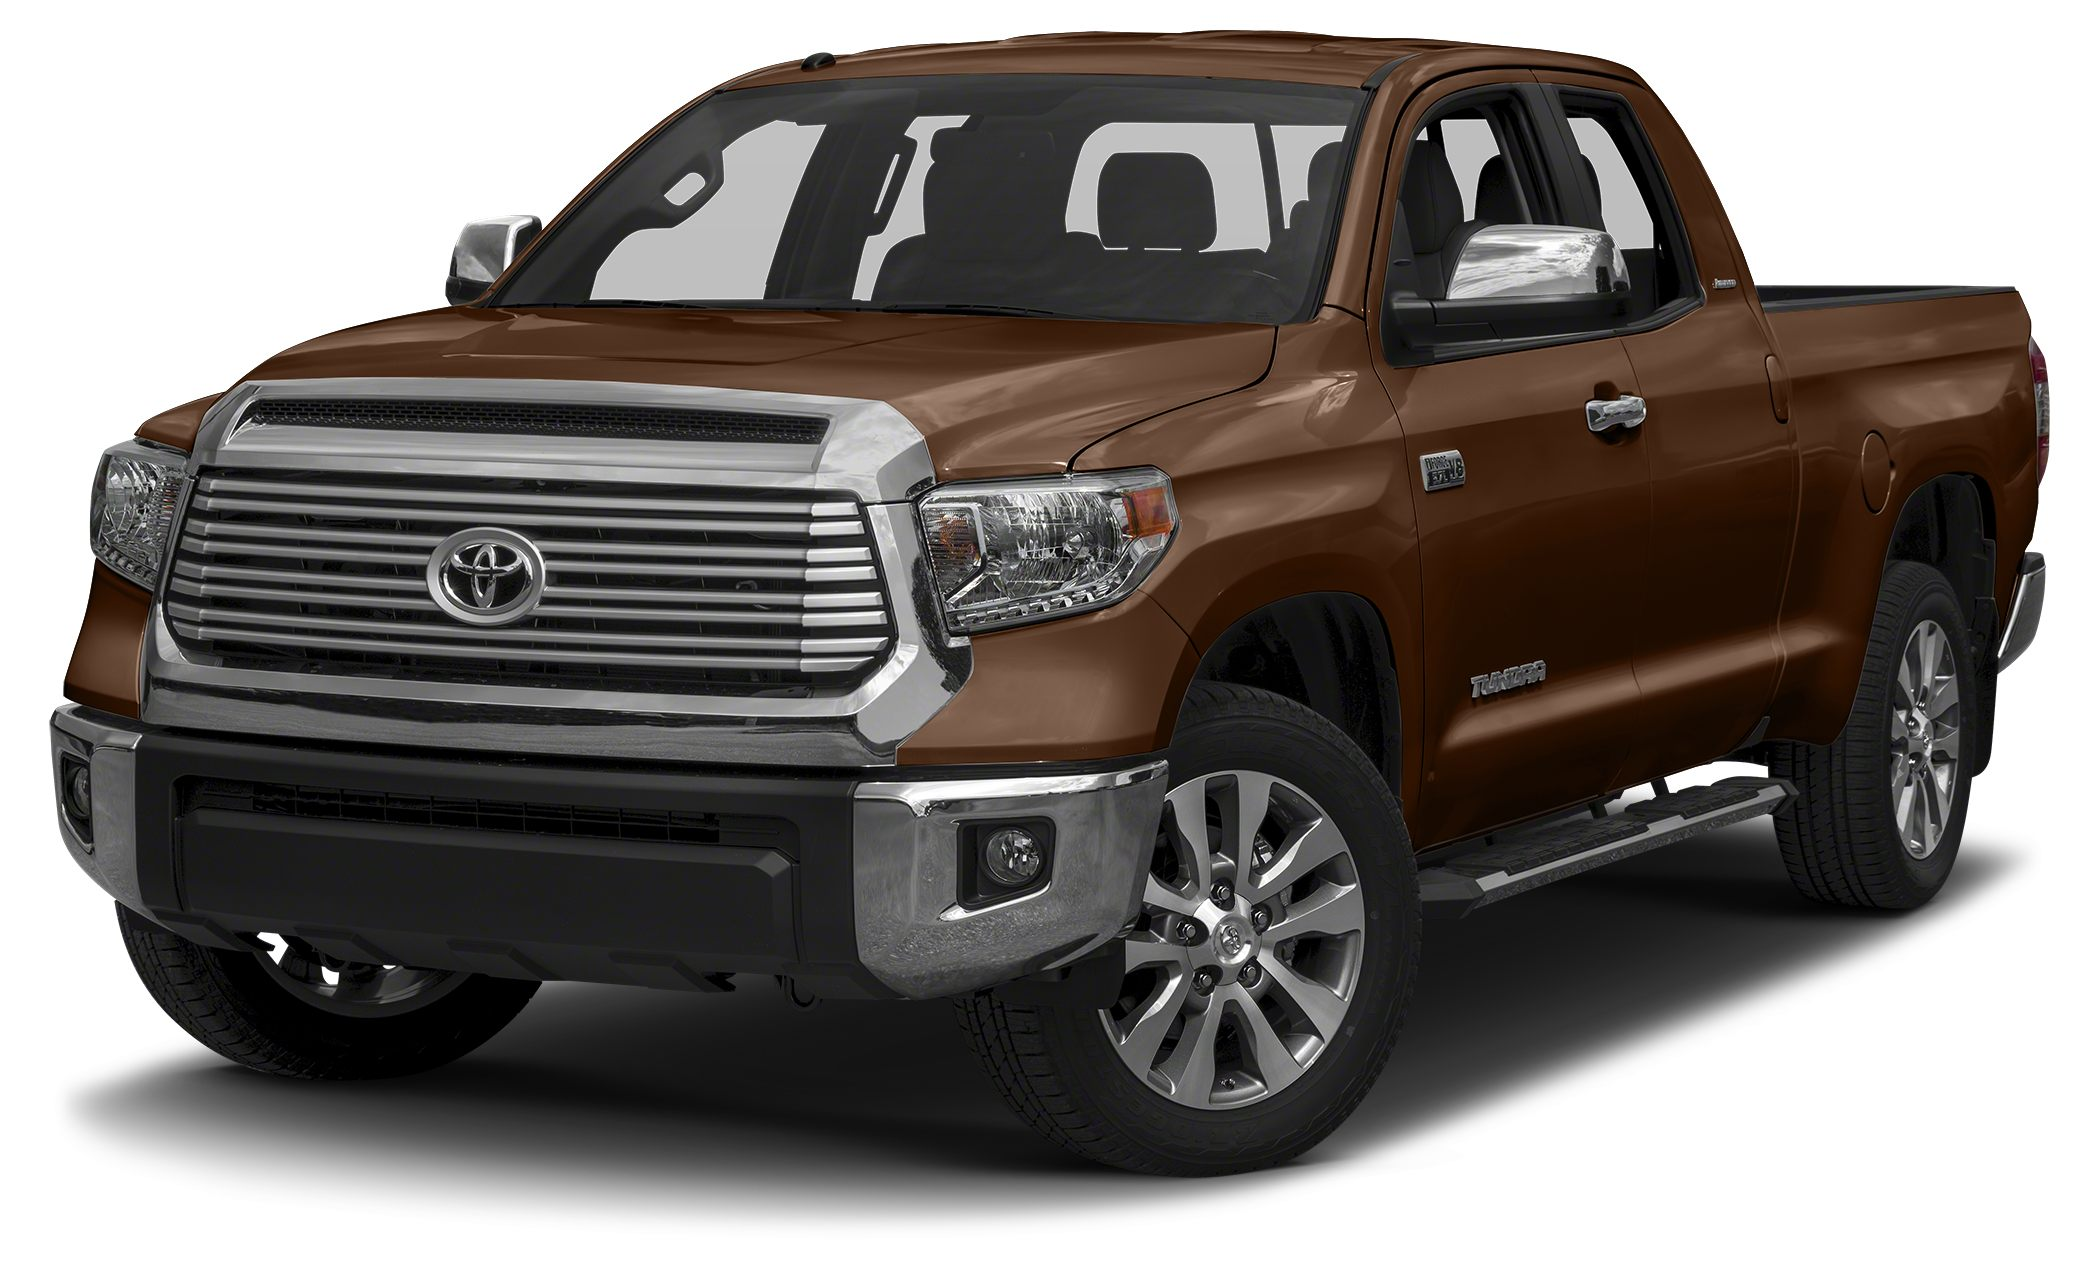 2014 Toyota Tundra Limited LTD trim Heated Leather Seats Nav System 4x4 Back-Up Camera iPodM